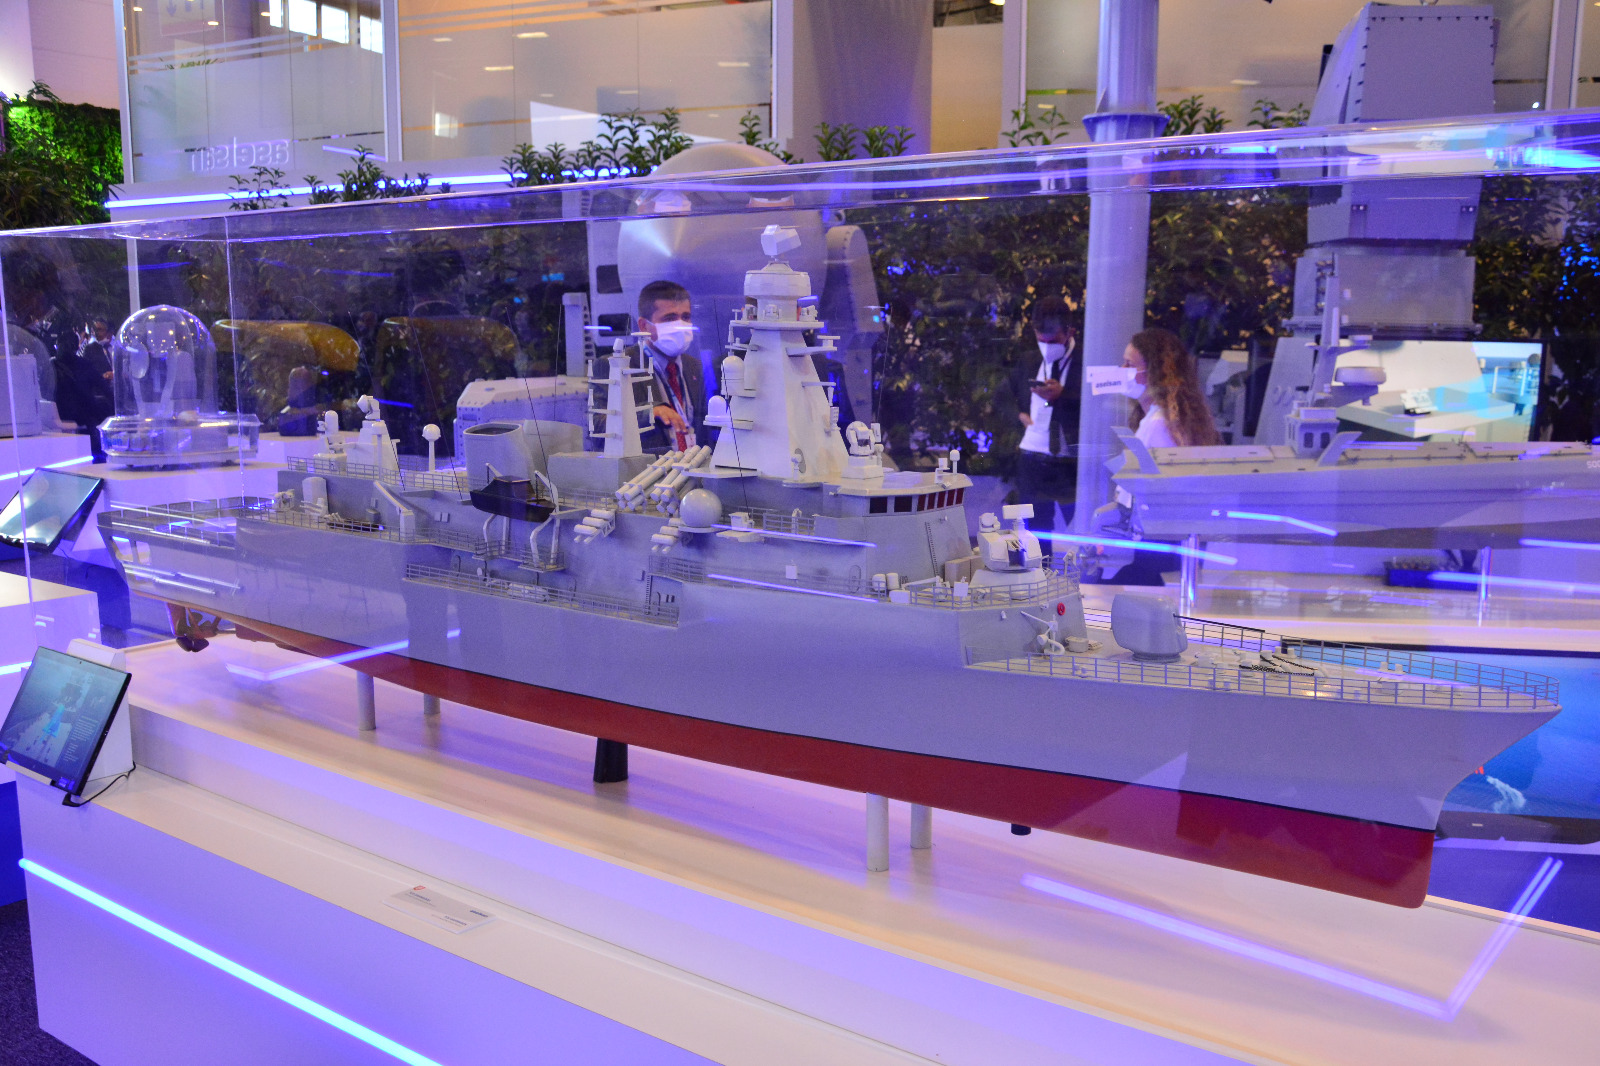 BARBAROS Class Frigates Mid-Life Upgrade (MLU) Project Update